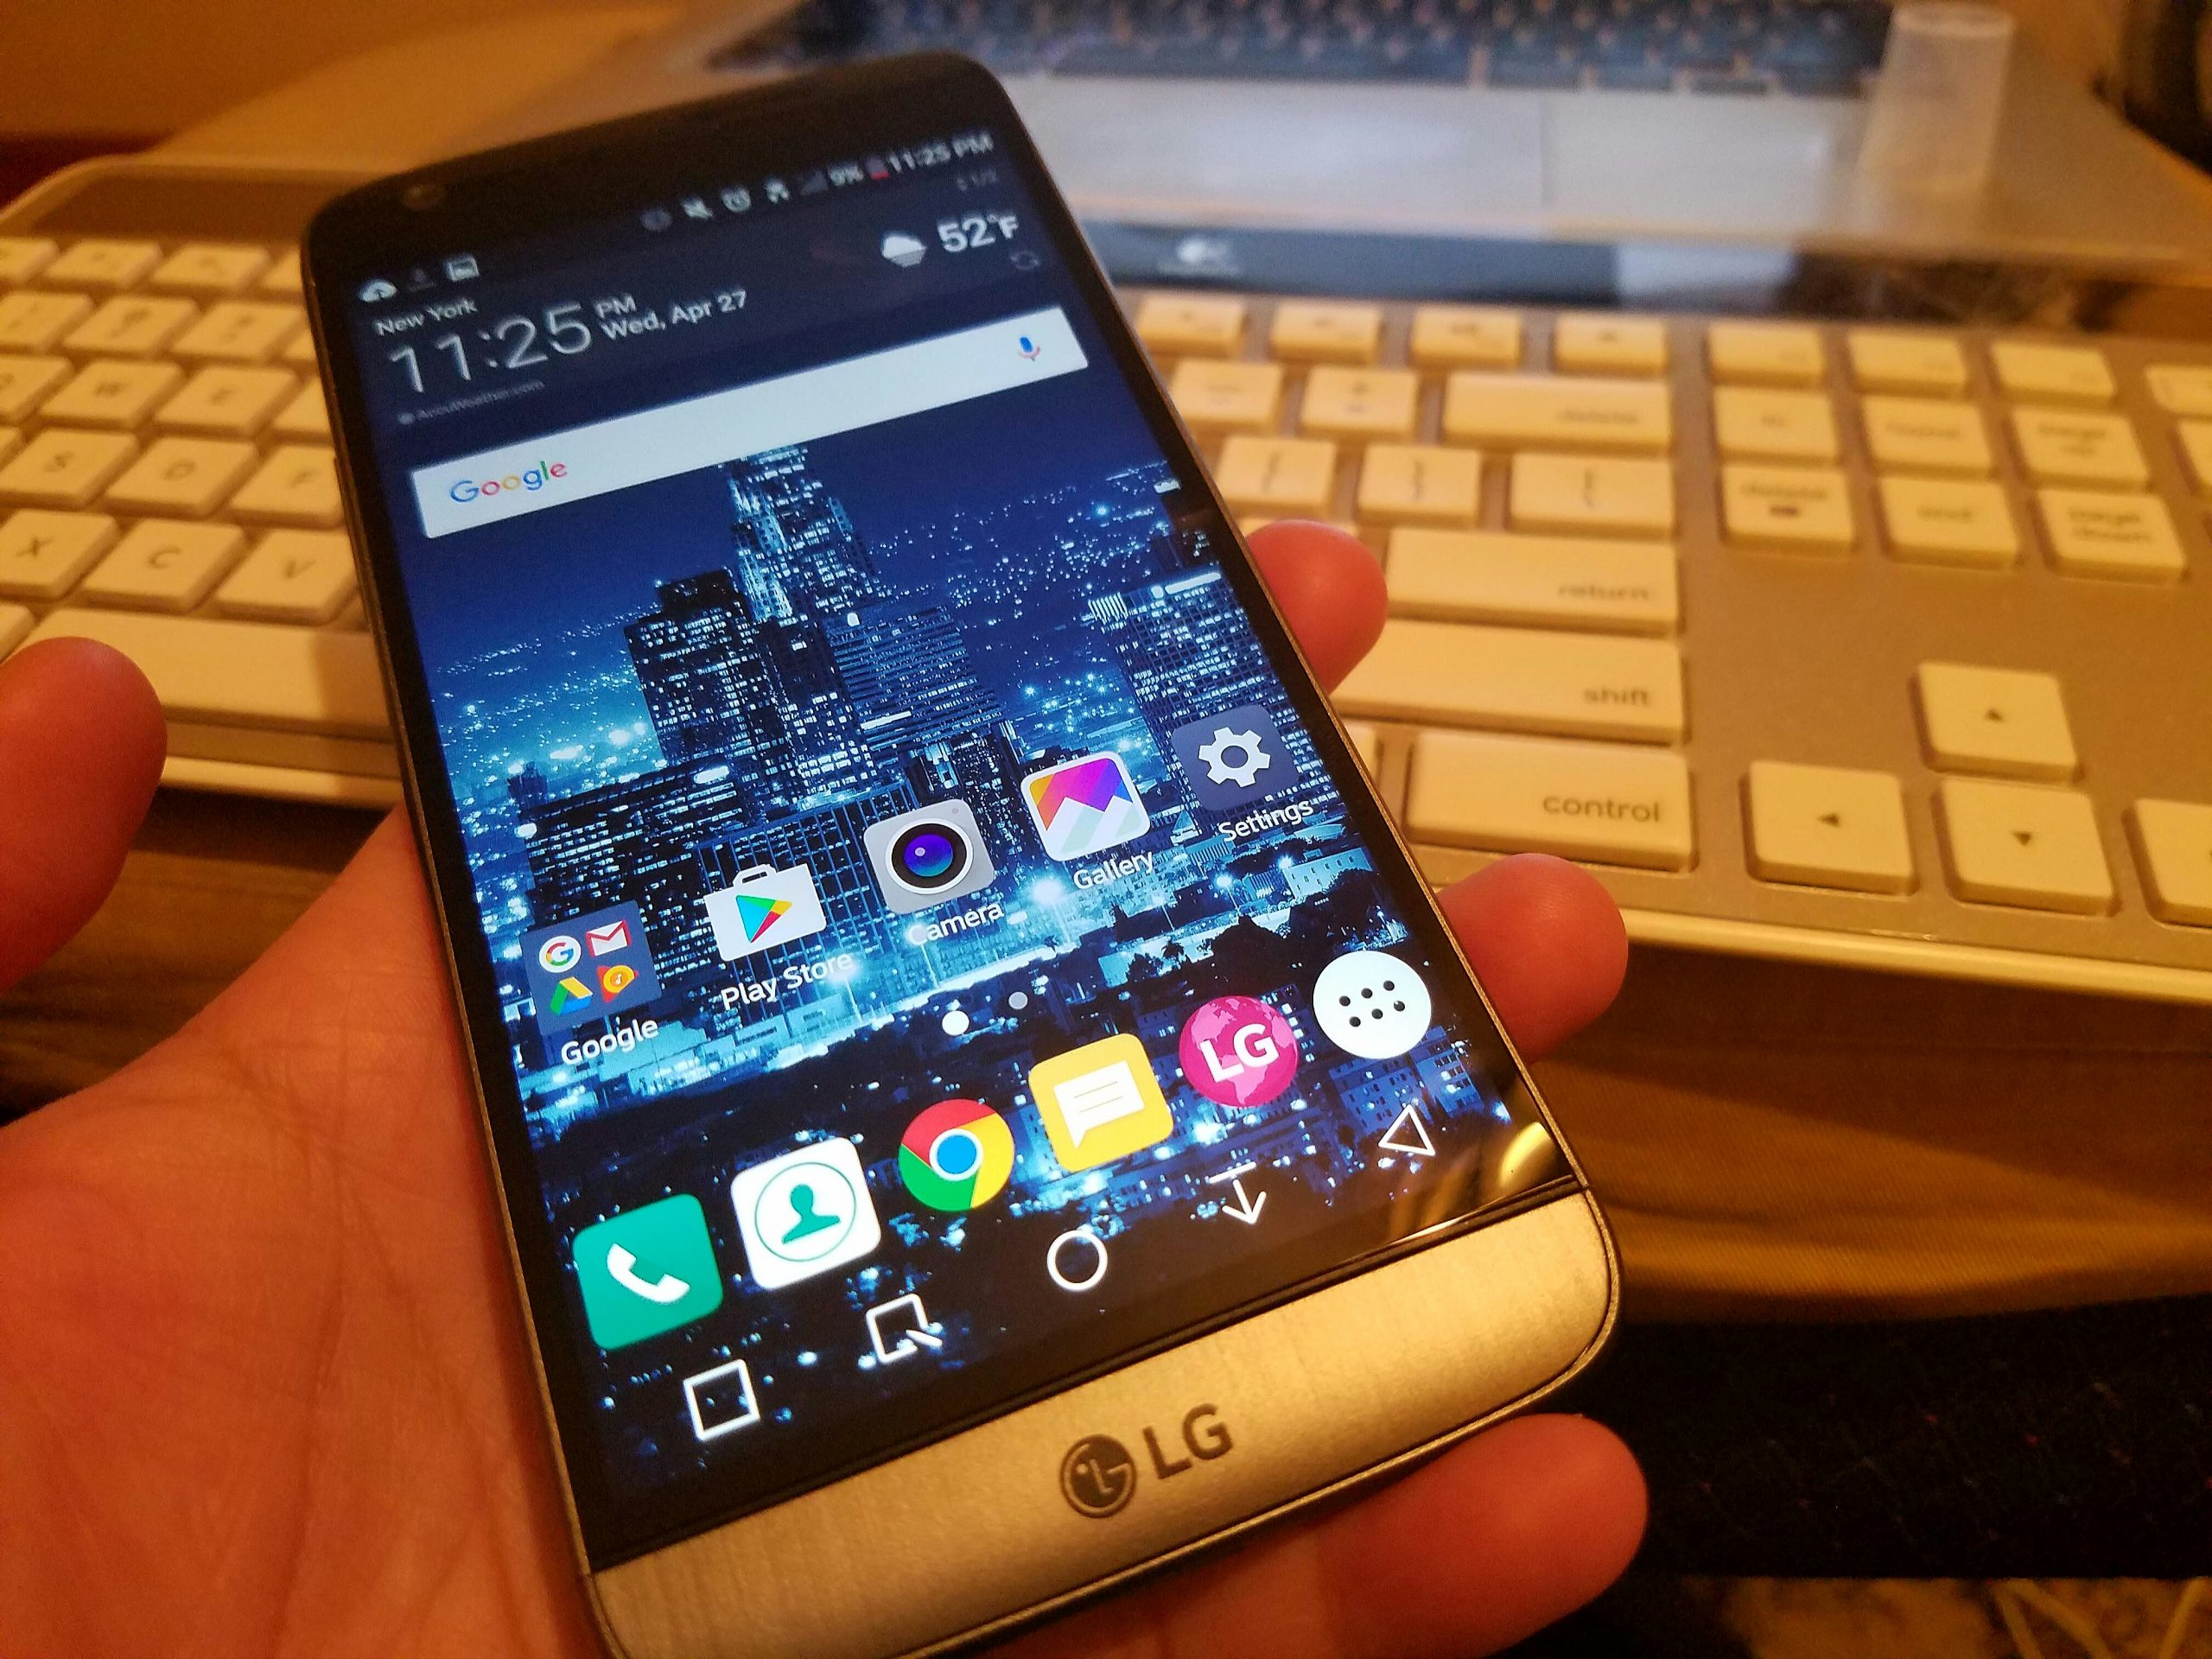 Google themes network failed - If You Re The Recipient Of An Lg G5 From T Mobile Or Verizon You Ll Be Disappointed To Hear If You Haven T Experienced It Already That The Lg G5 Doesn T